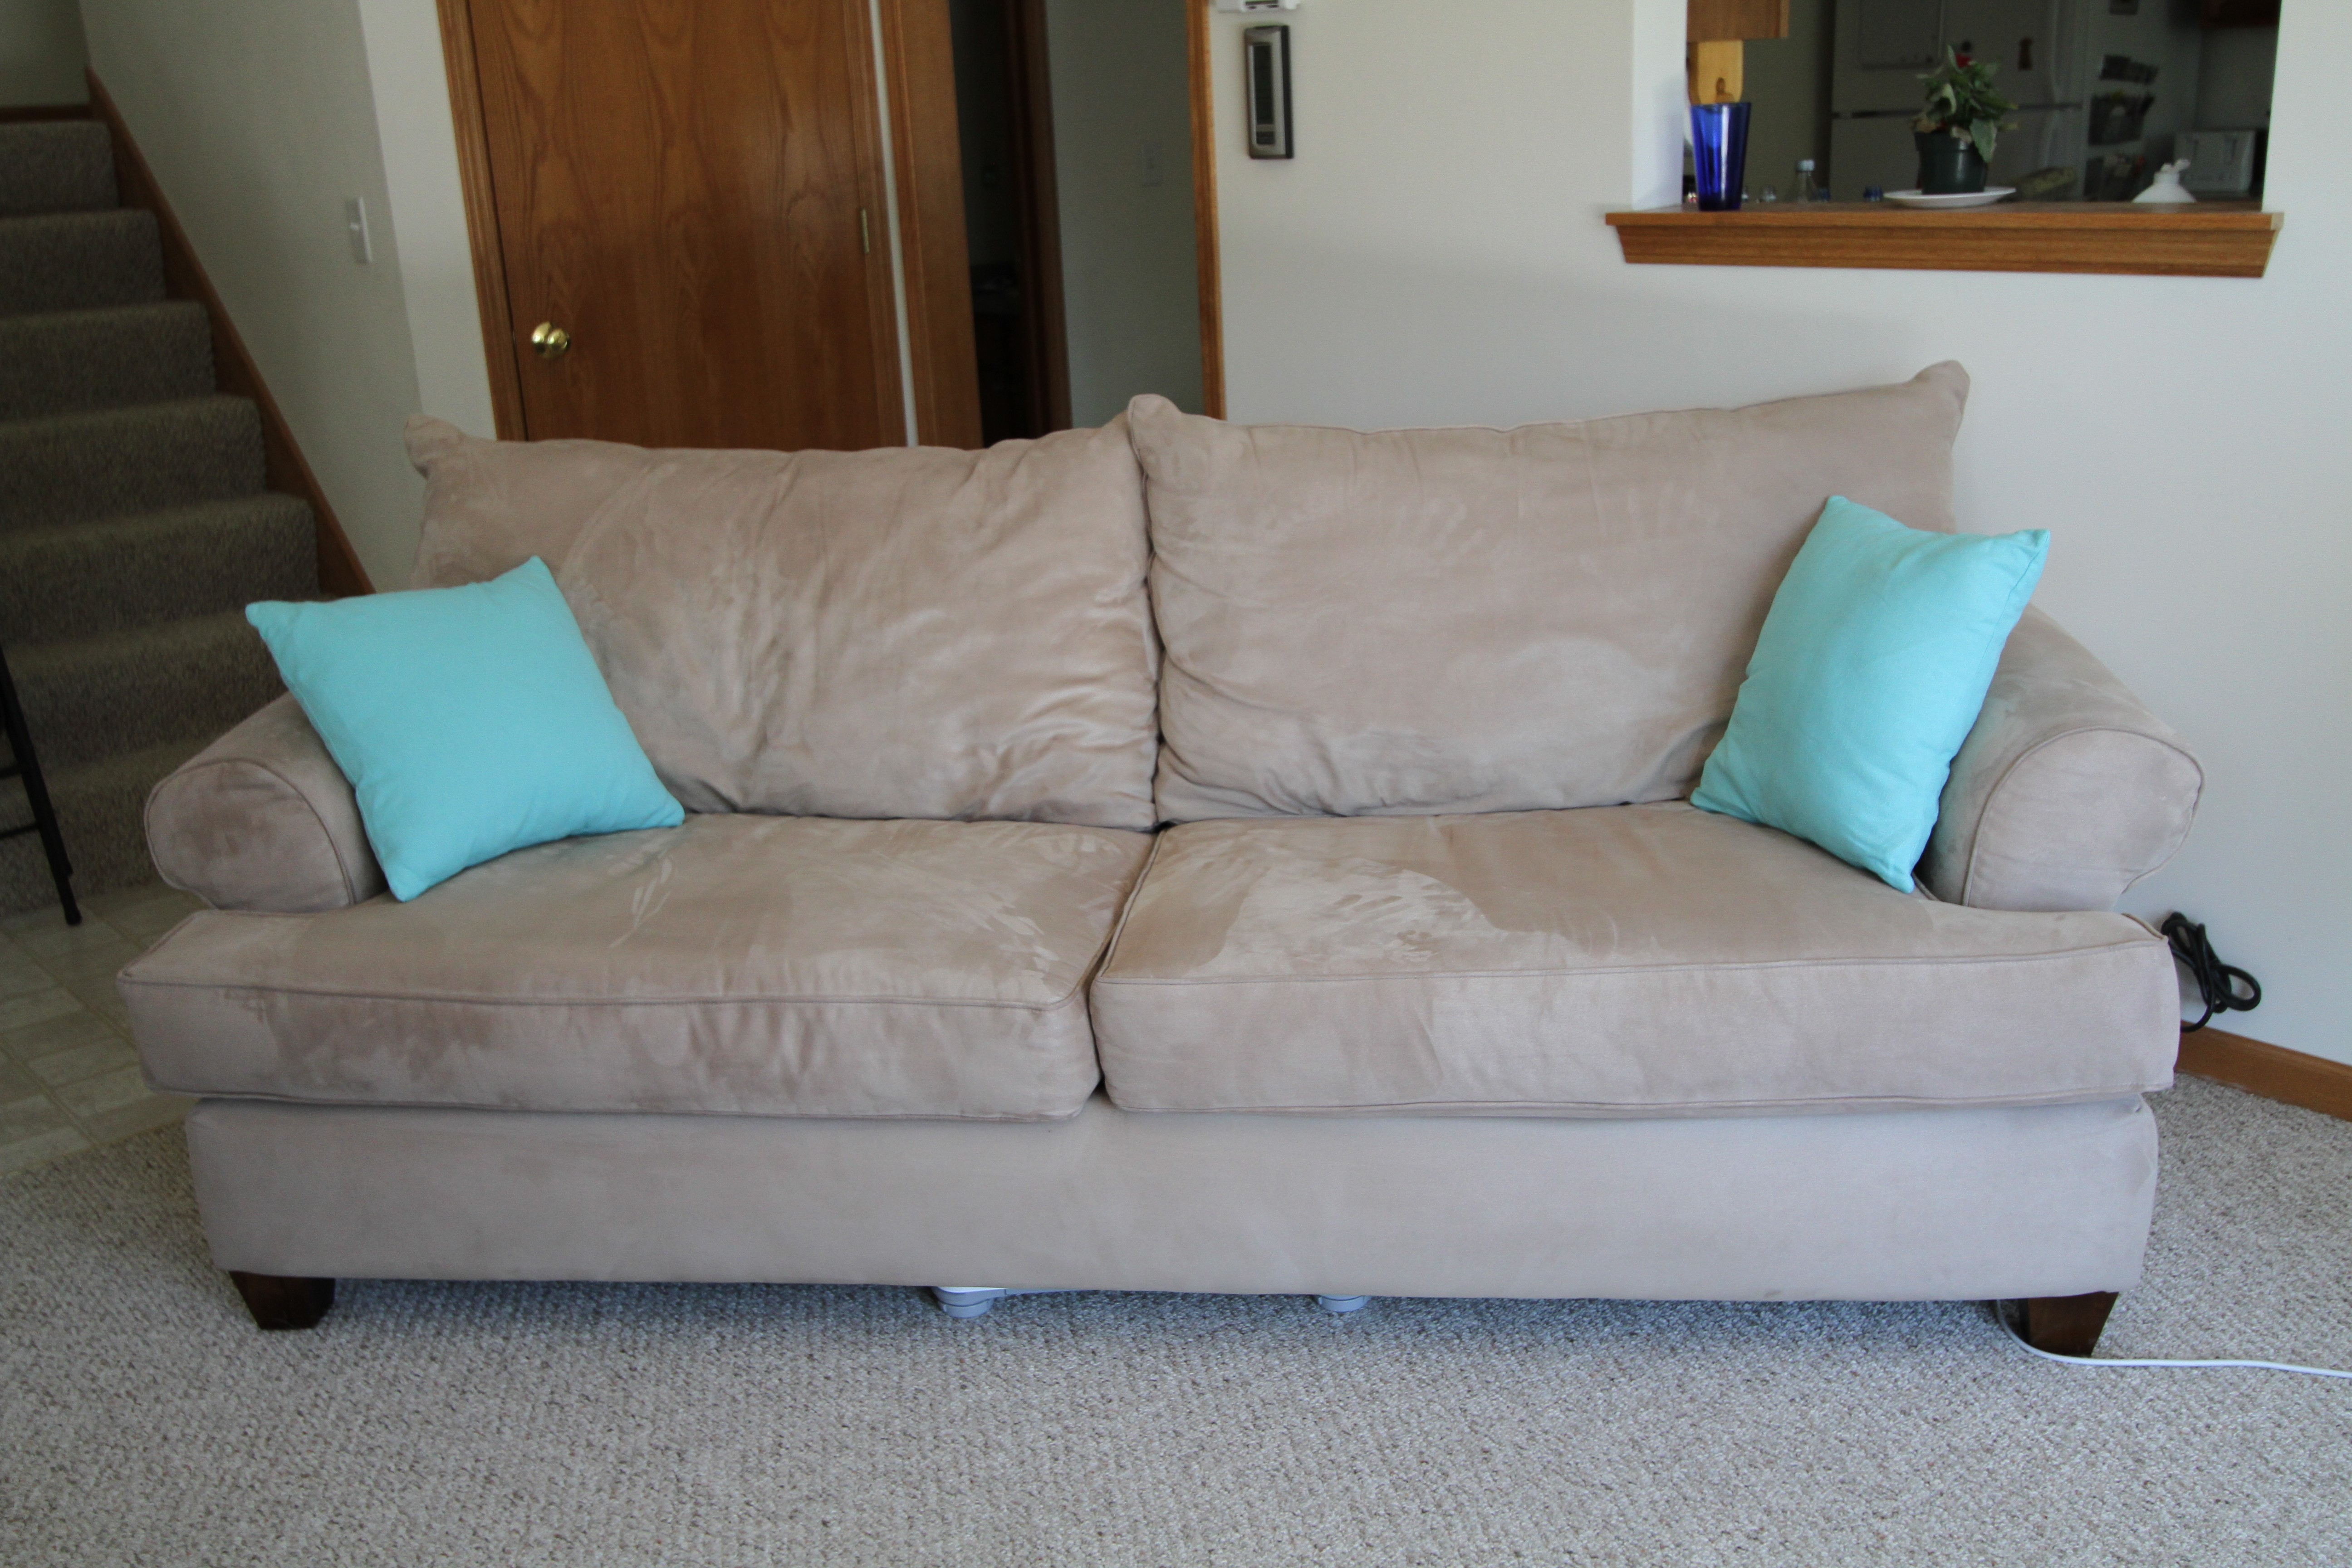 Tan Microfiber Sofa Sofa Simmons Microfiber Reviewsover Atner Recliner - TheSofa